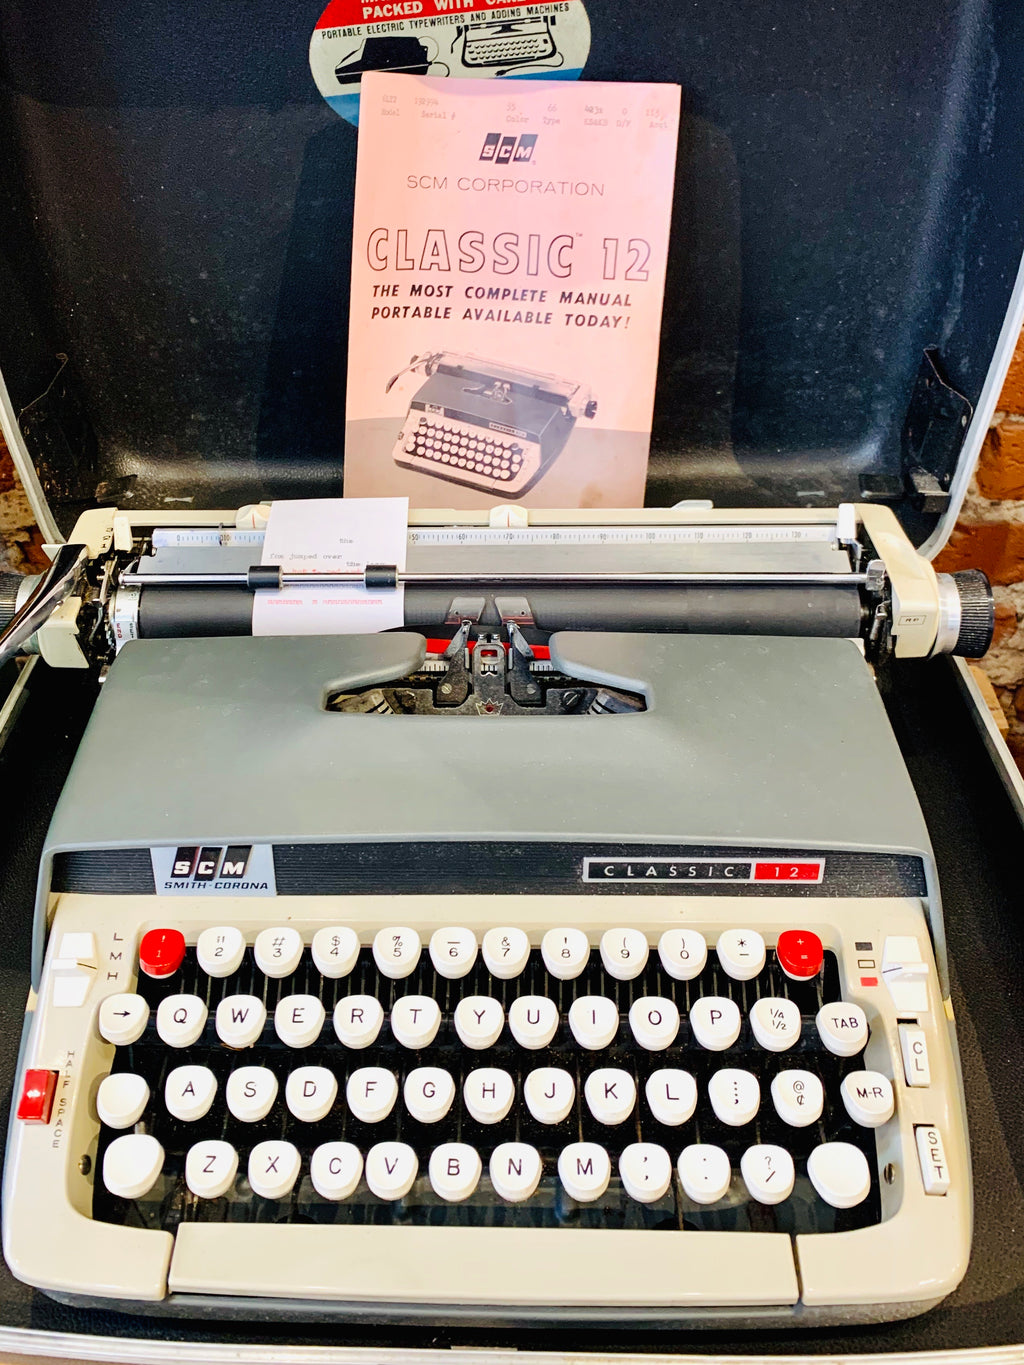 SCM Smith-Corona Classic 12 Typewriter